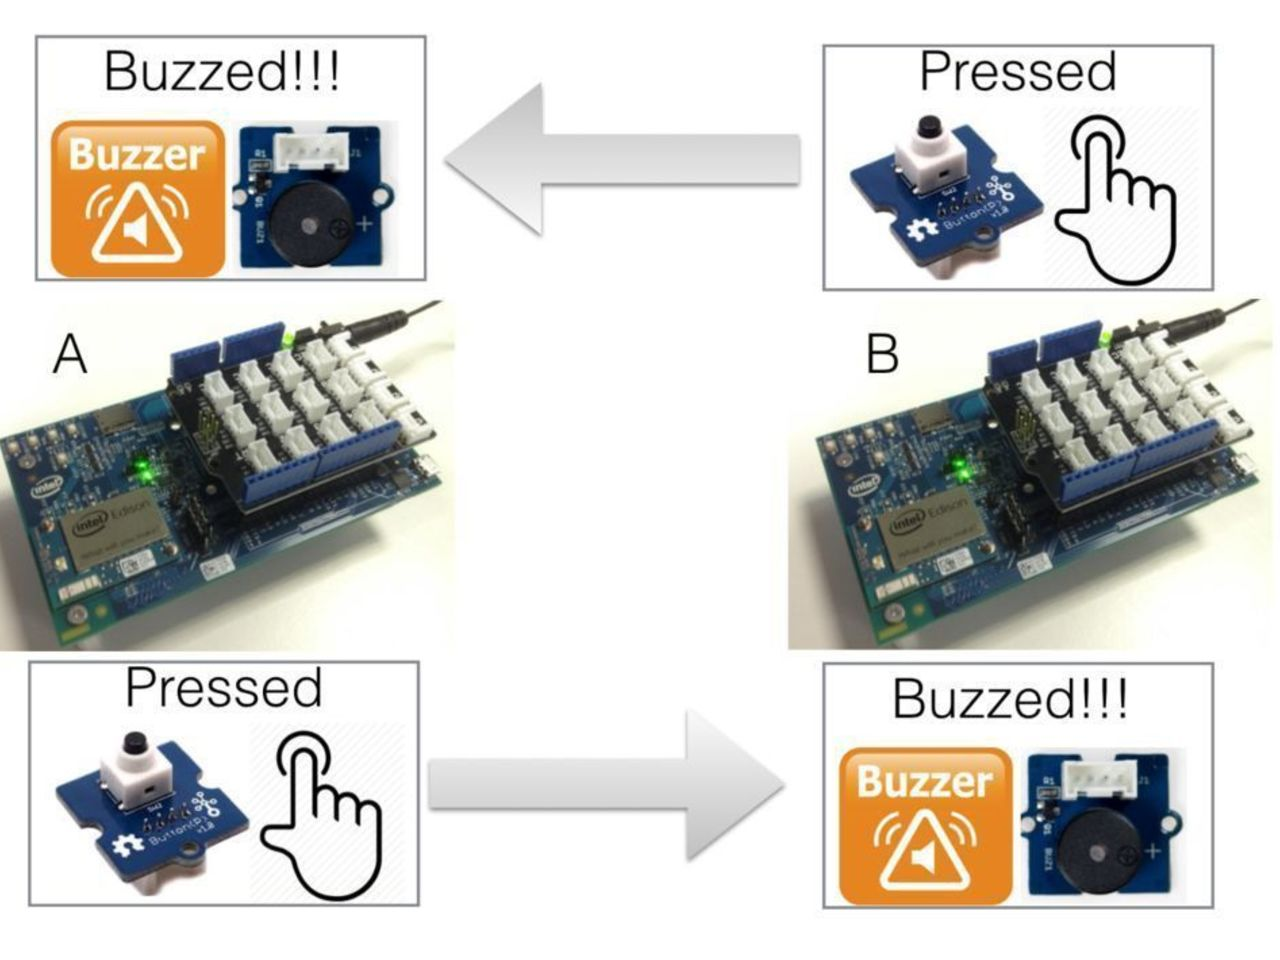 Two-way Panic Button and Buzzer with Intel Edison, NodeRed Restful API, Arduino Grove Sensors